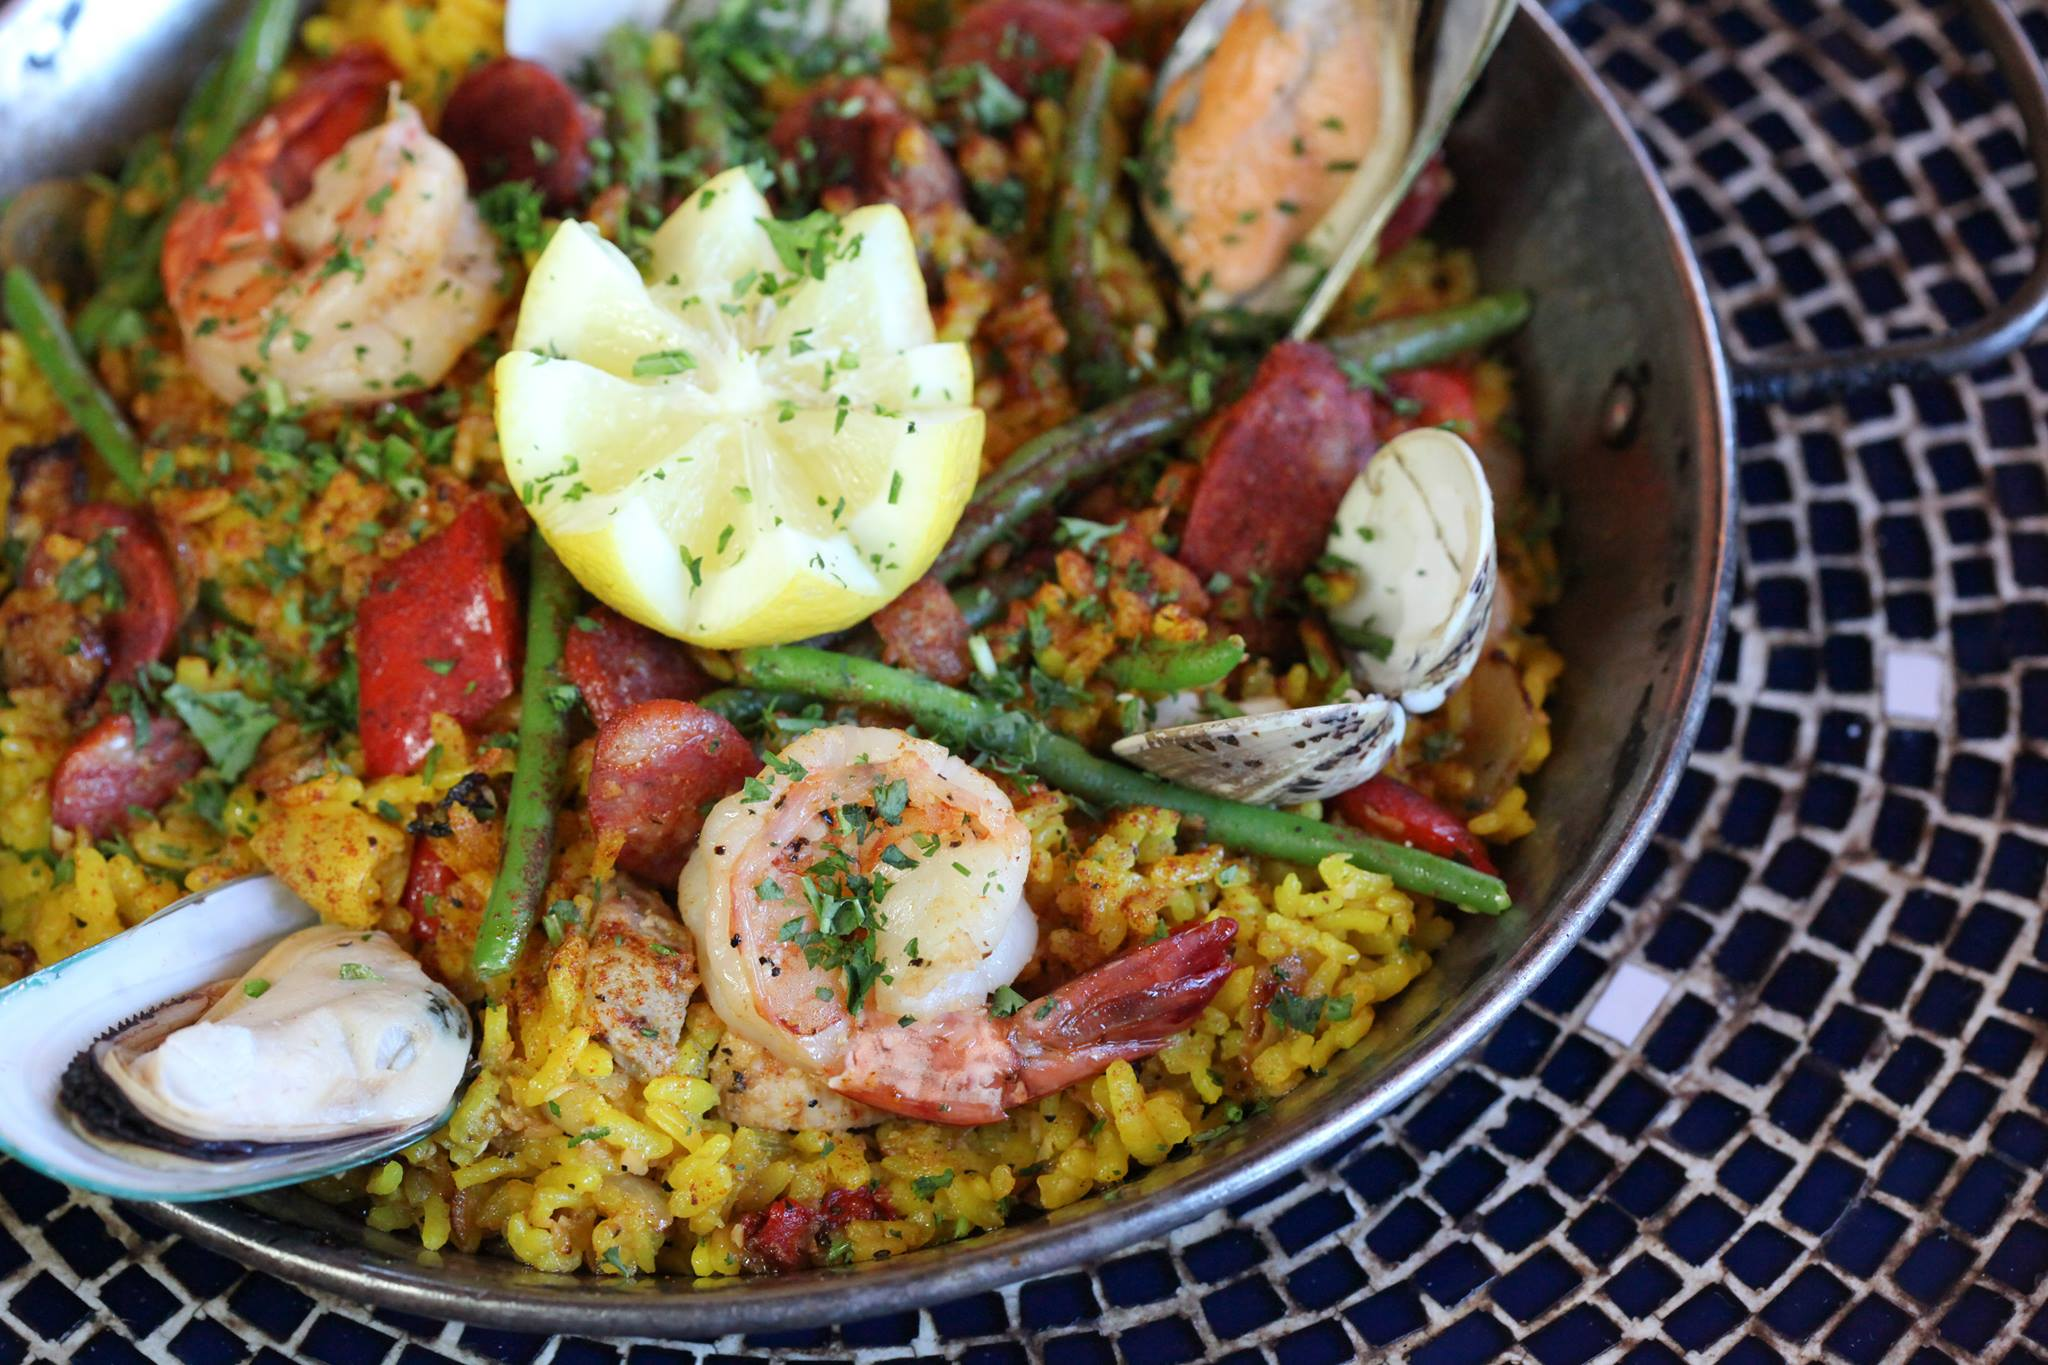 Paella | Courtesy of La Bodega